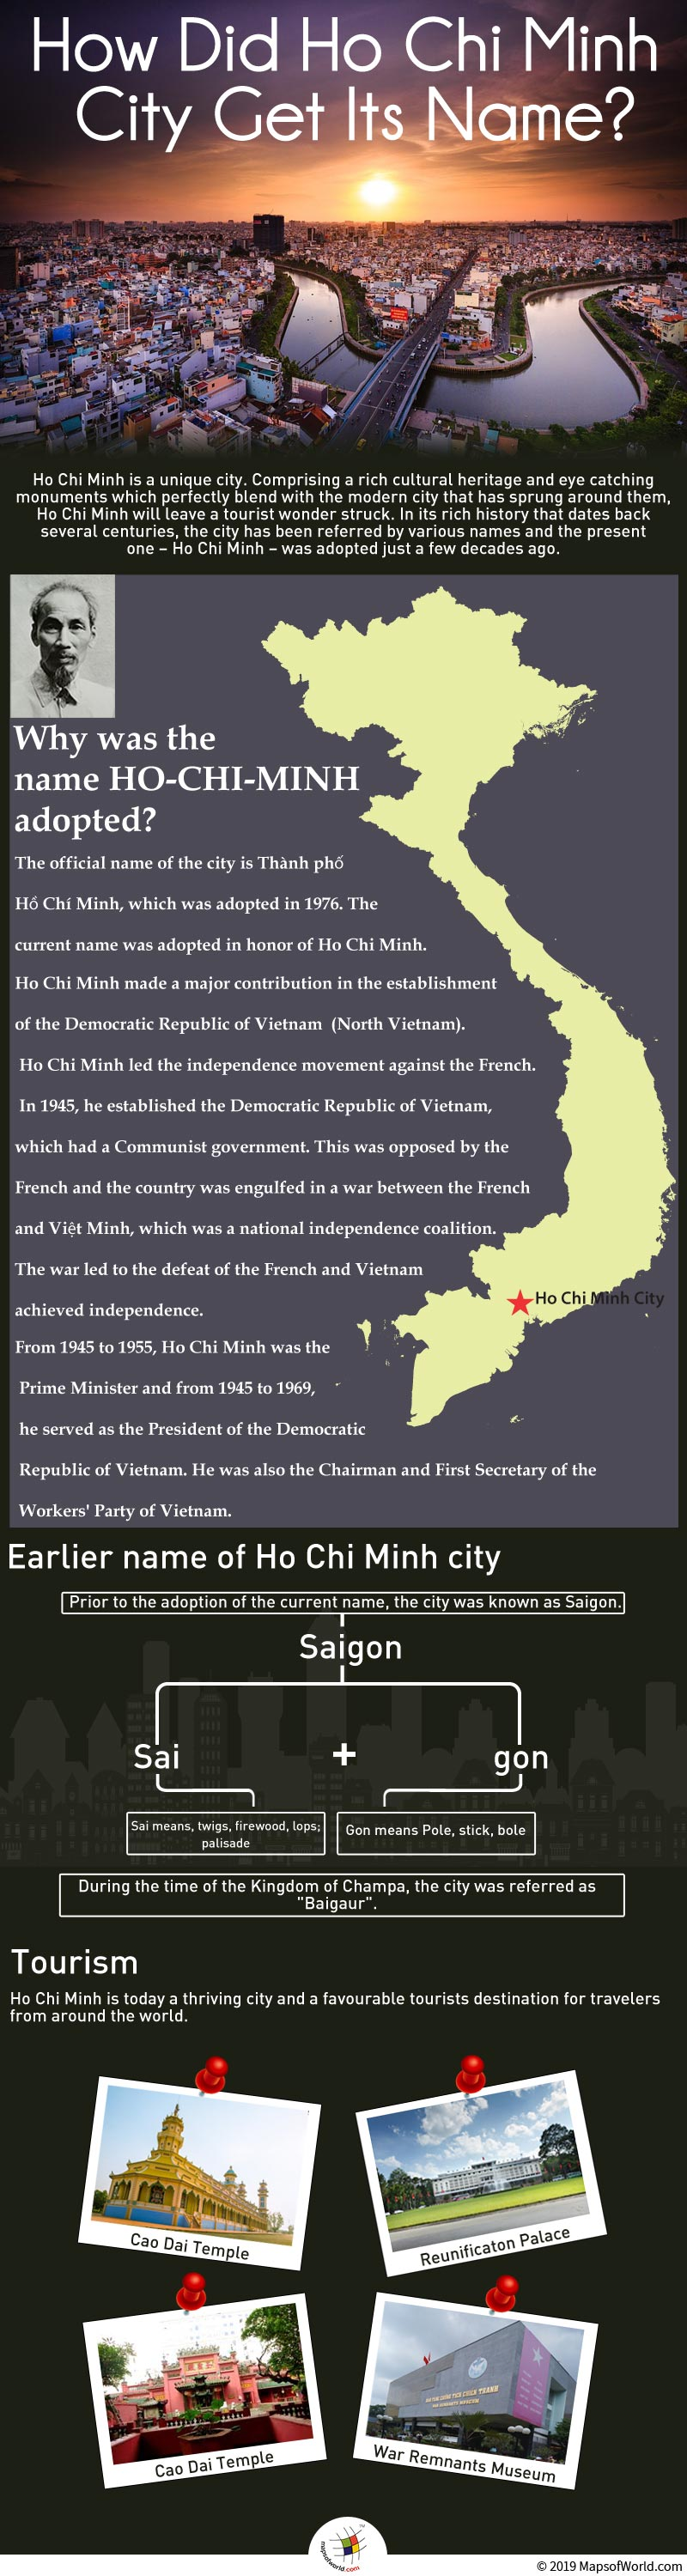 Infographic Giving Information on Ho Chi Minh City